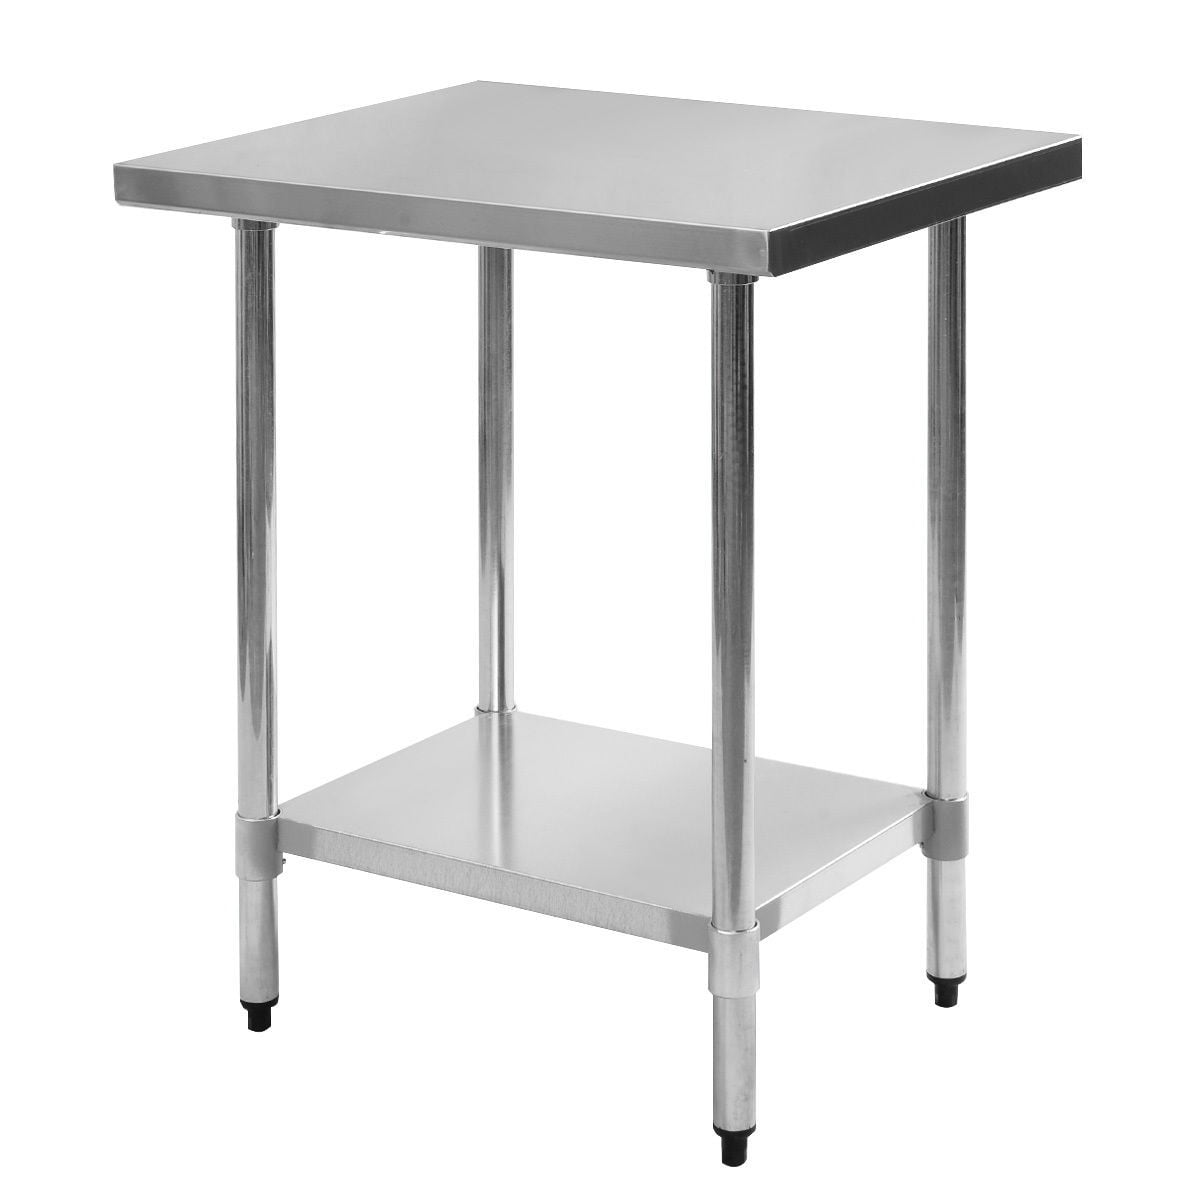 Stainless Steel Commercial Kitchen Prep U0026 Work Table (24